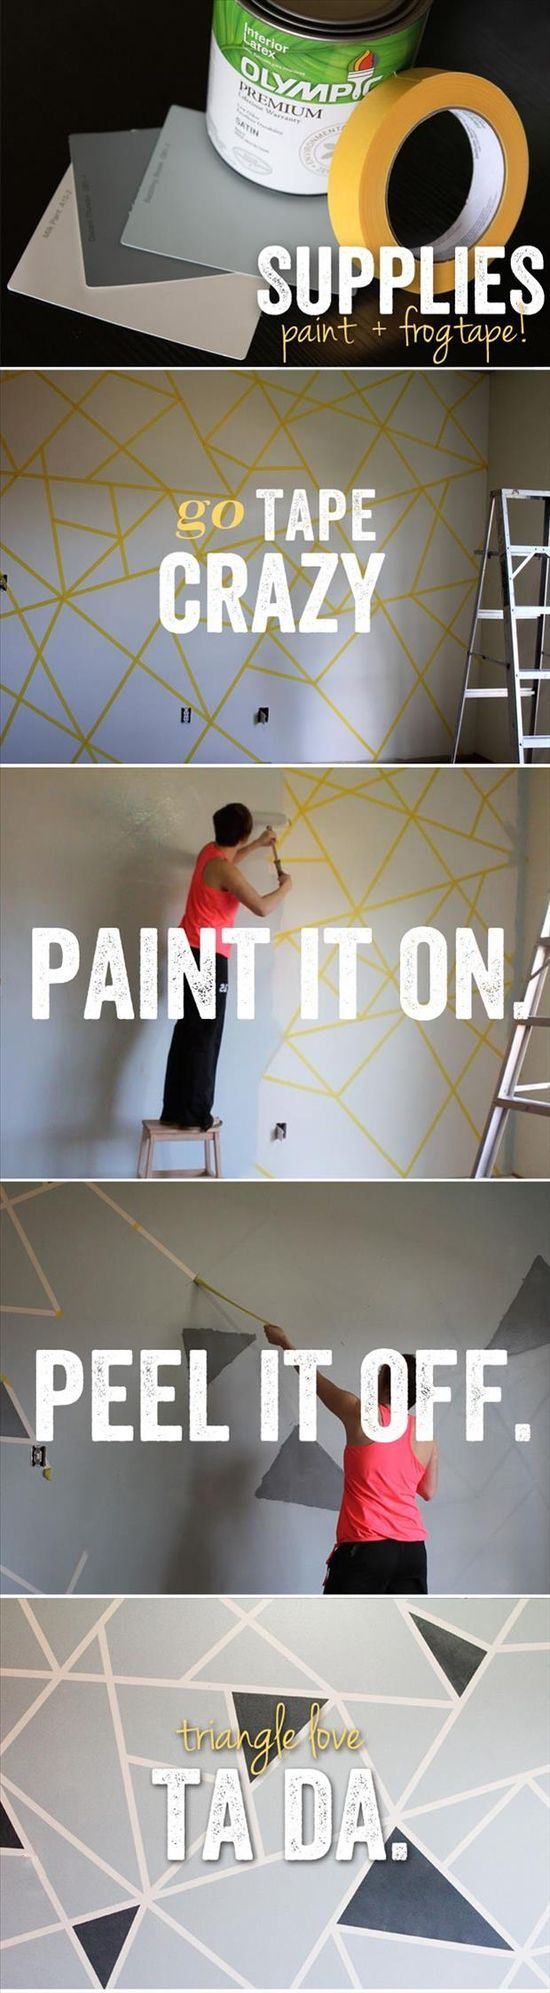 Wall art kids rooms shapes and random fun do it yourself craft ideas u2013 30 pics this would be cool for a kids room and do some different colored shapes at random and then paint the rest of solutioingenieria Choice Image